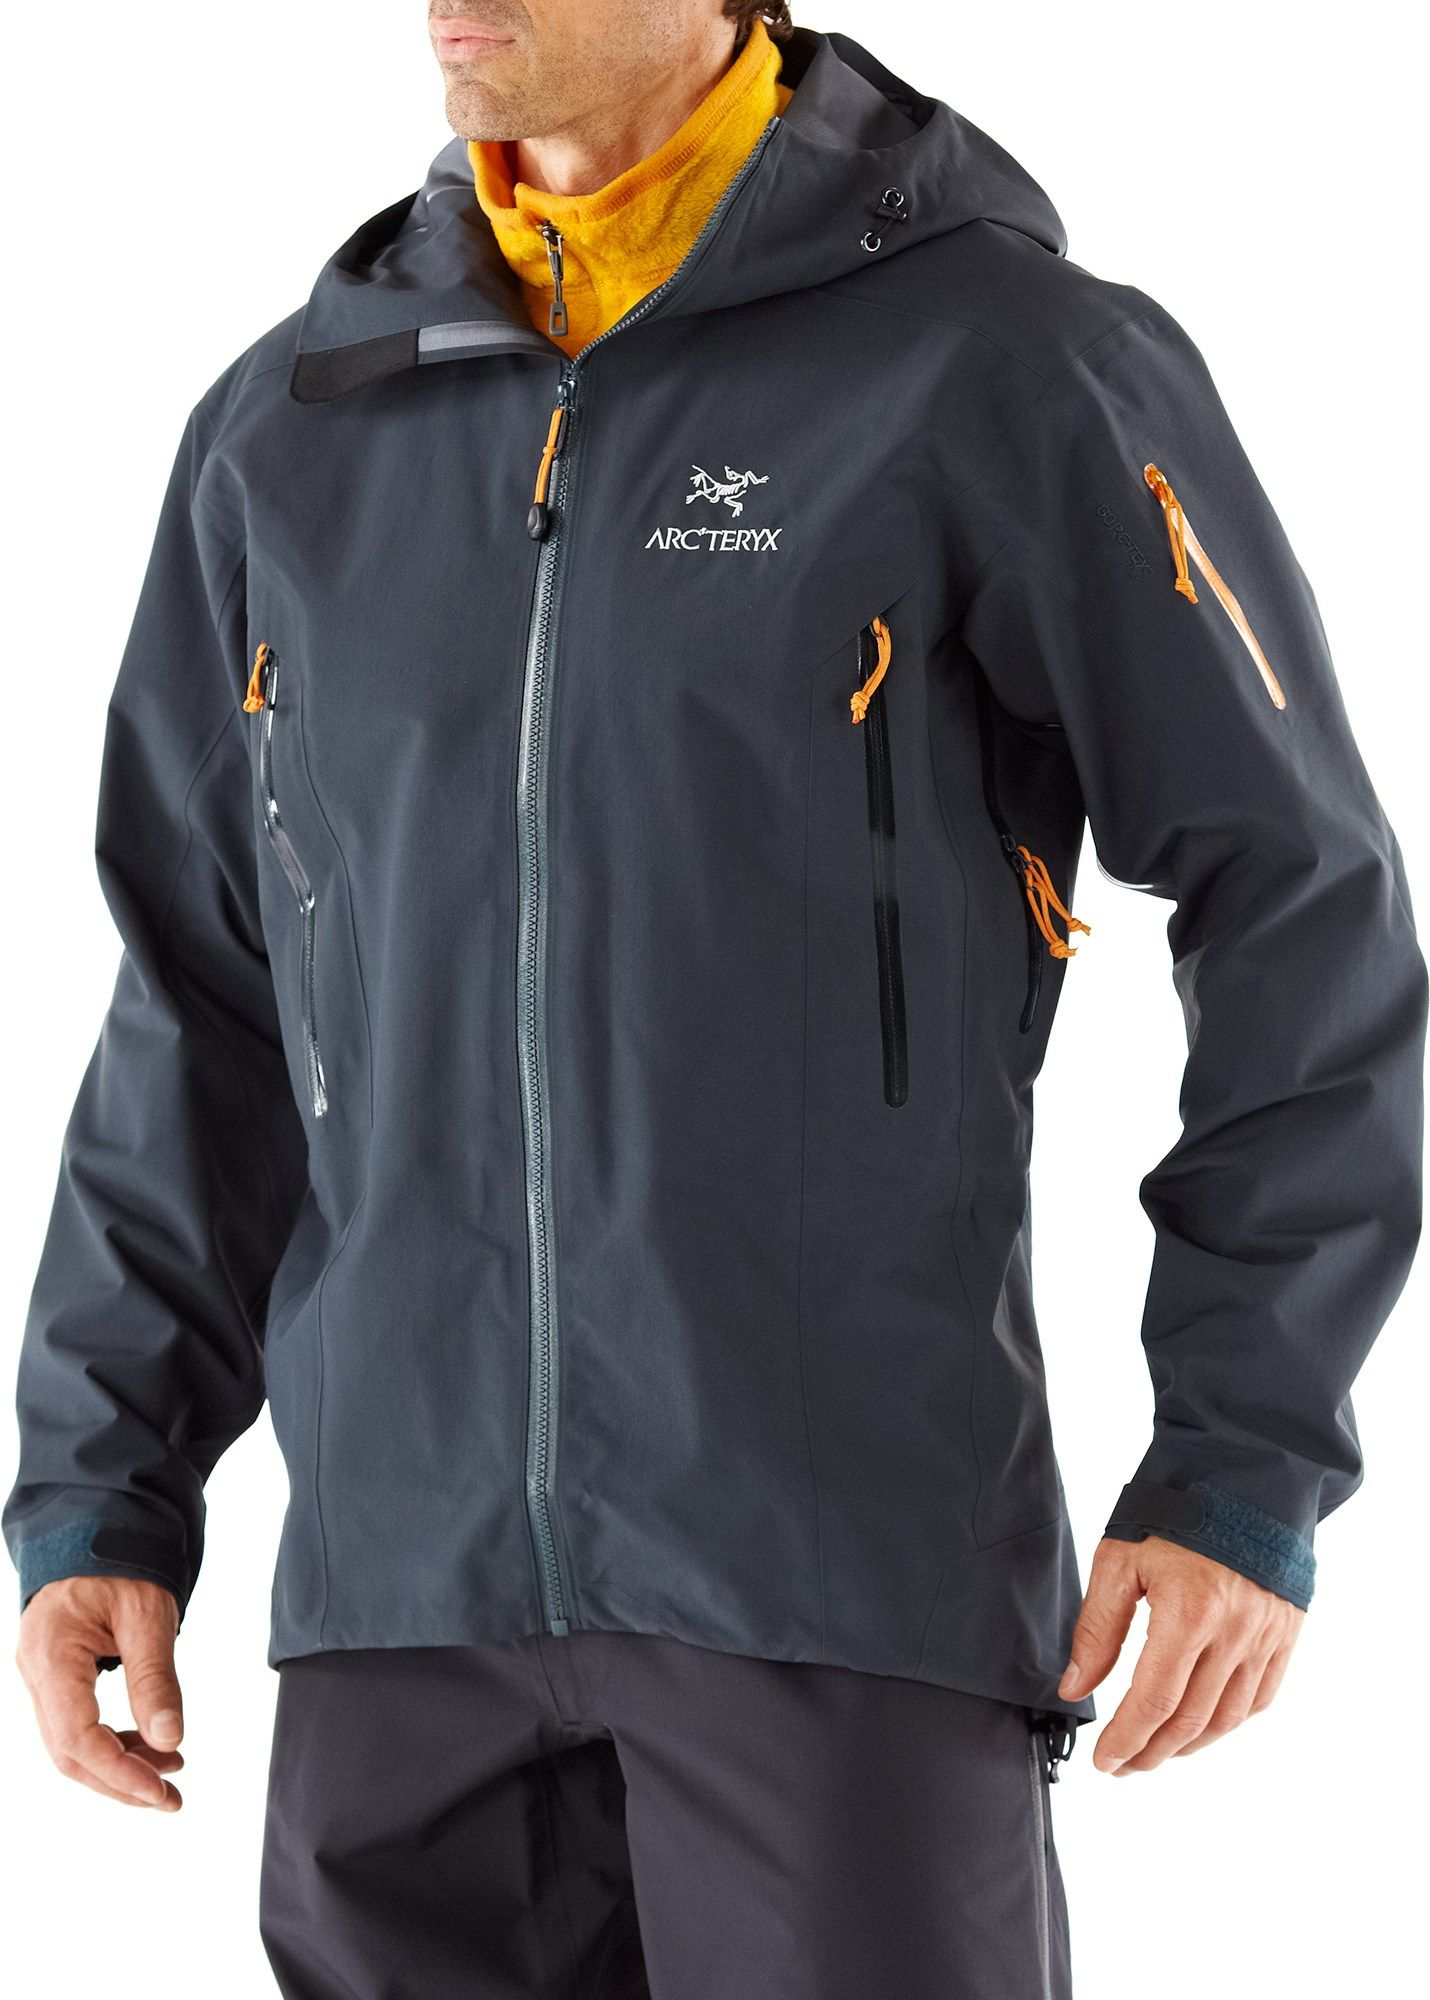 Arc'teryx Theta SV Jacket - Men's | REI Co-op | ТАКТИЧНИЙ ...